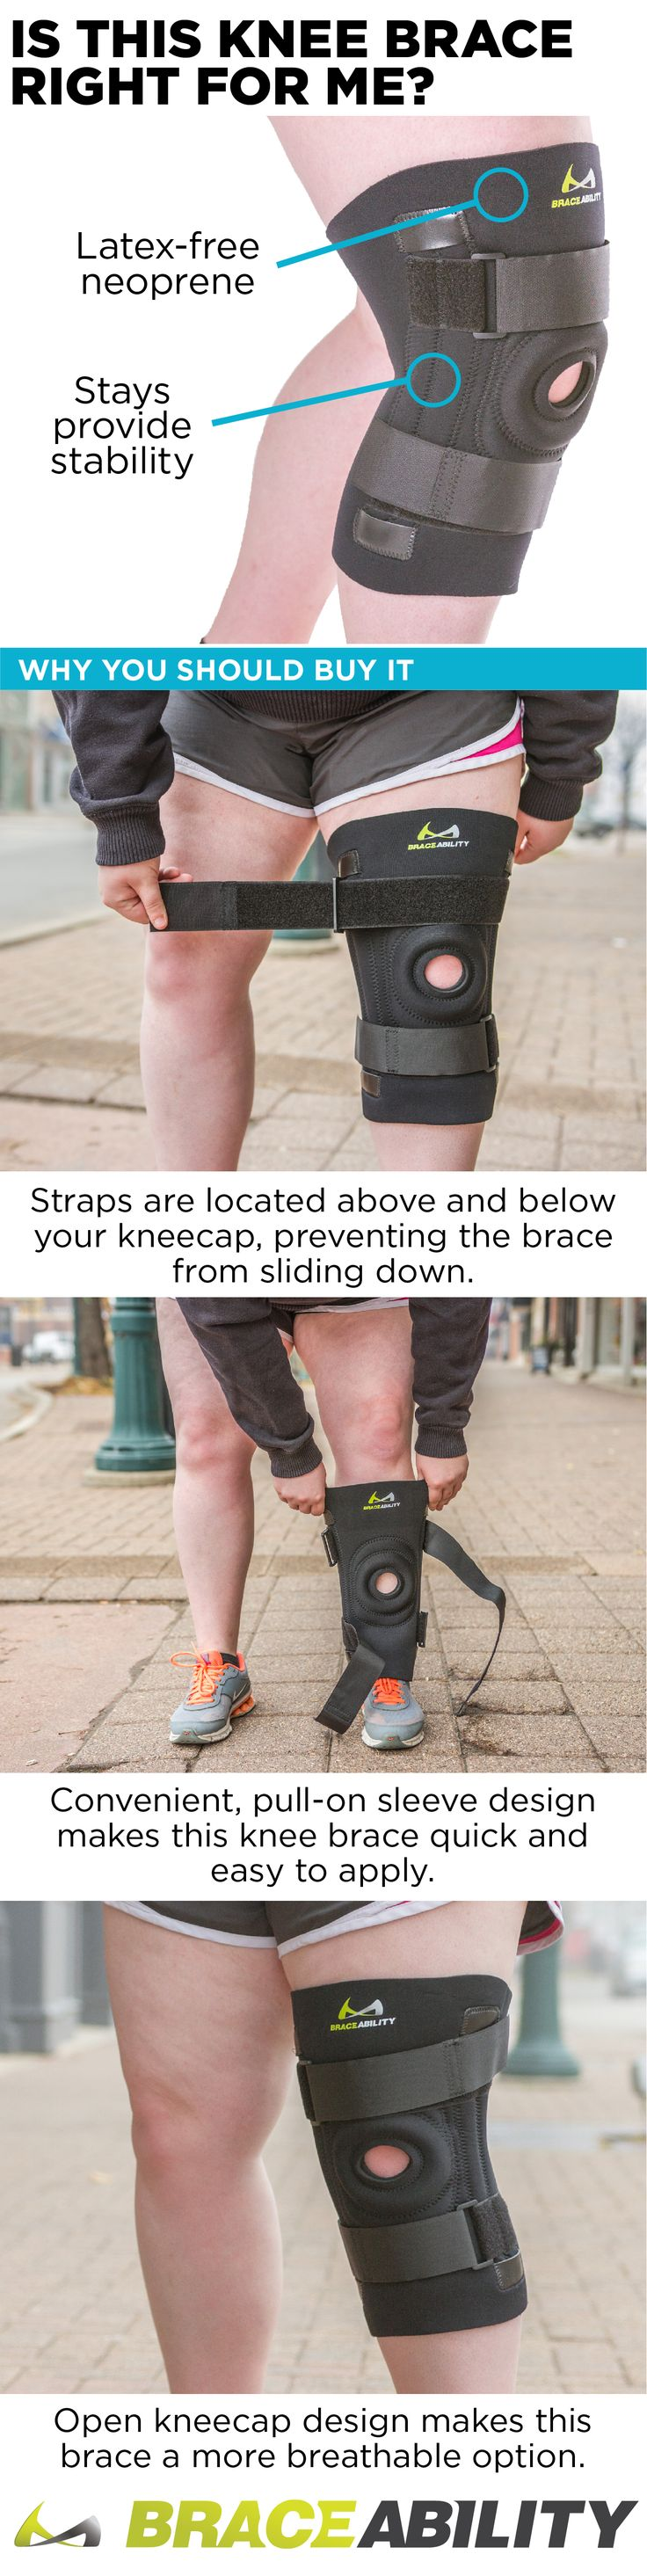 This knee brace for overweight or obese people with big legs and thighs has an easy, slip-on design and is comfortable to wear all day. This bariatric patella support helps to treat Grade I collateral ligament sprain, patellar subluxation, chondromalacia, patellar tendonitis, patellofemoral tracking dysfunction, patellar dislocation, quadricep tendonitis, plica syndrome, and several other common knee conditions.